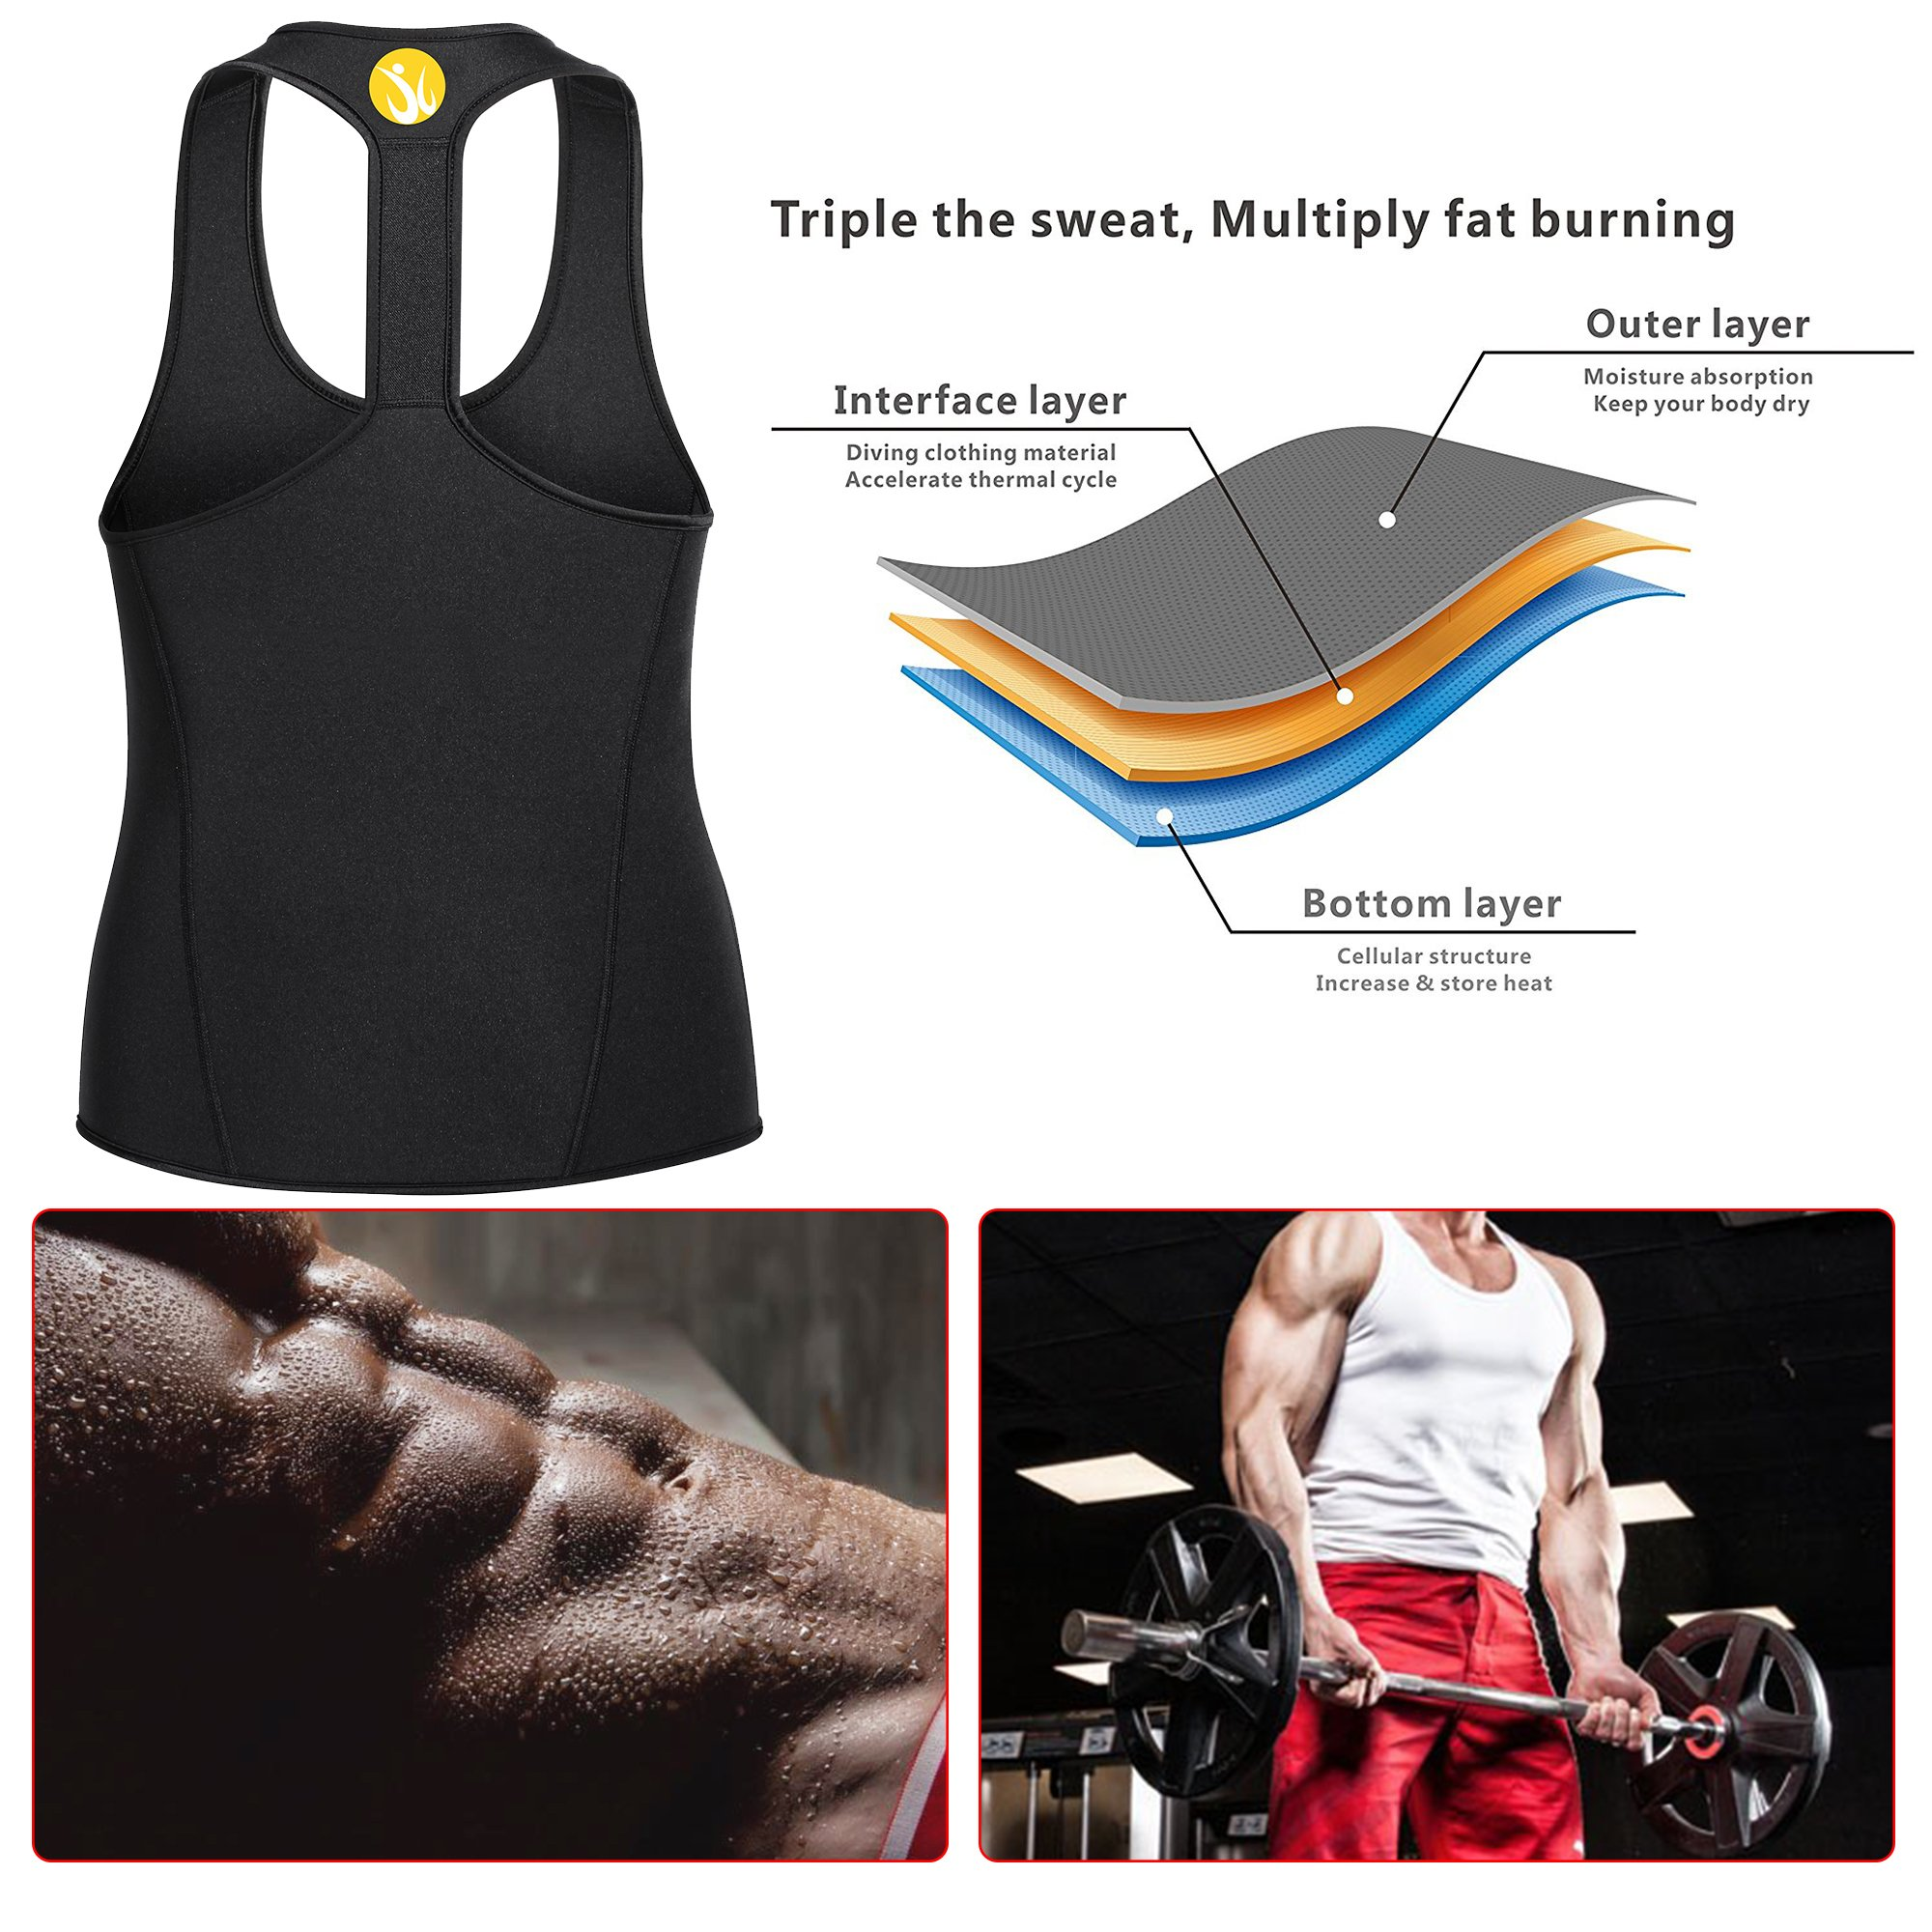 c72c59c1fa4 Junlan Men Workout Tank Top Vest Gym Shirt Weight Loss Dress Waist Body  Shaper Sauna Suit Slim Corset Compression Clothes   Accessories   Sports    Outdoors ...